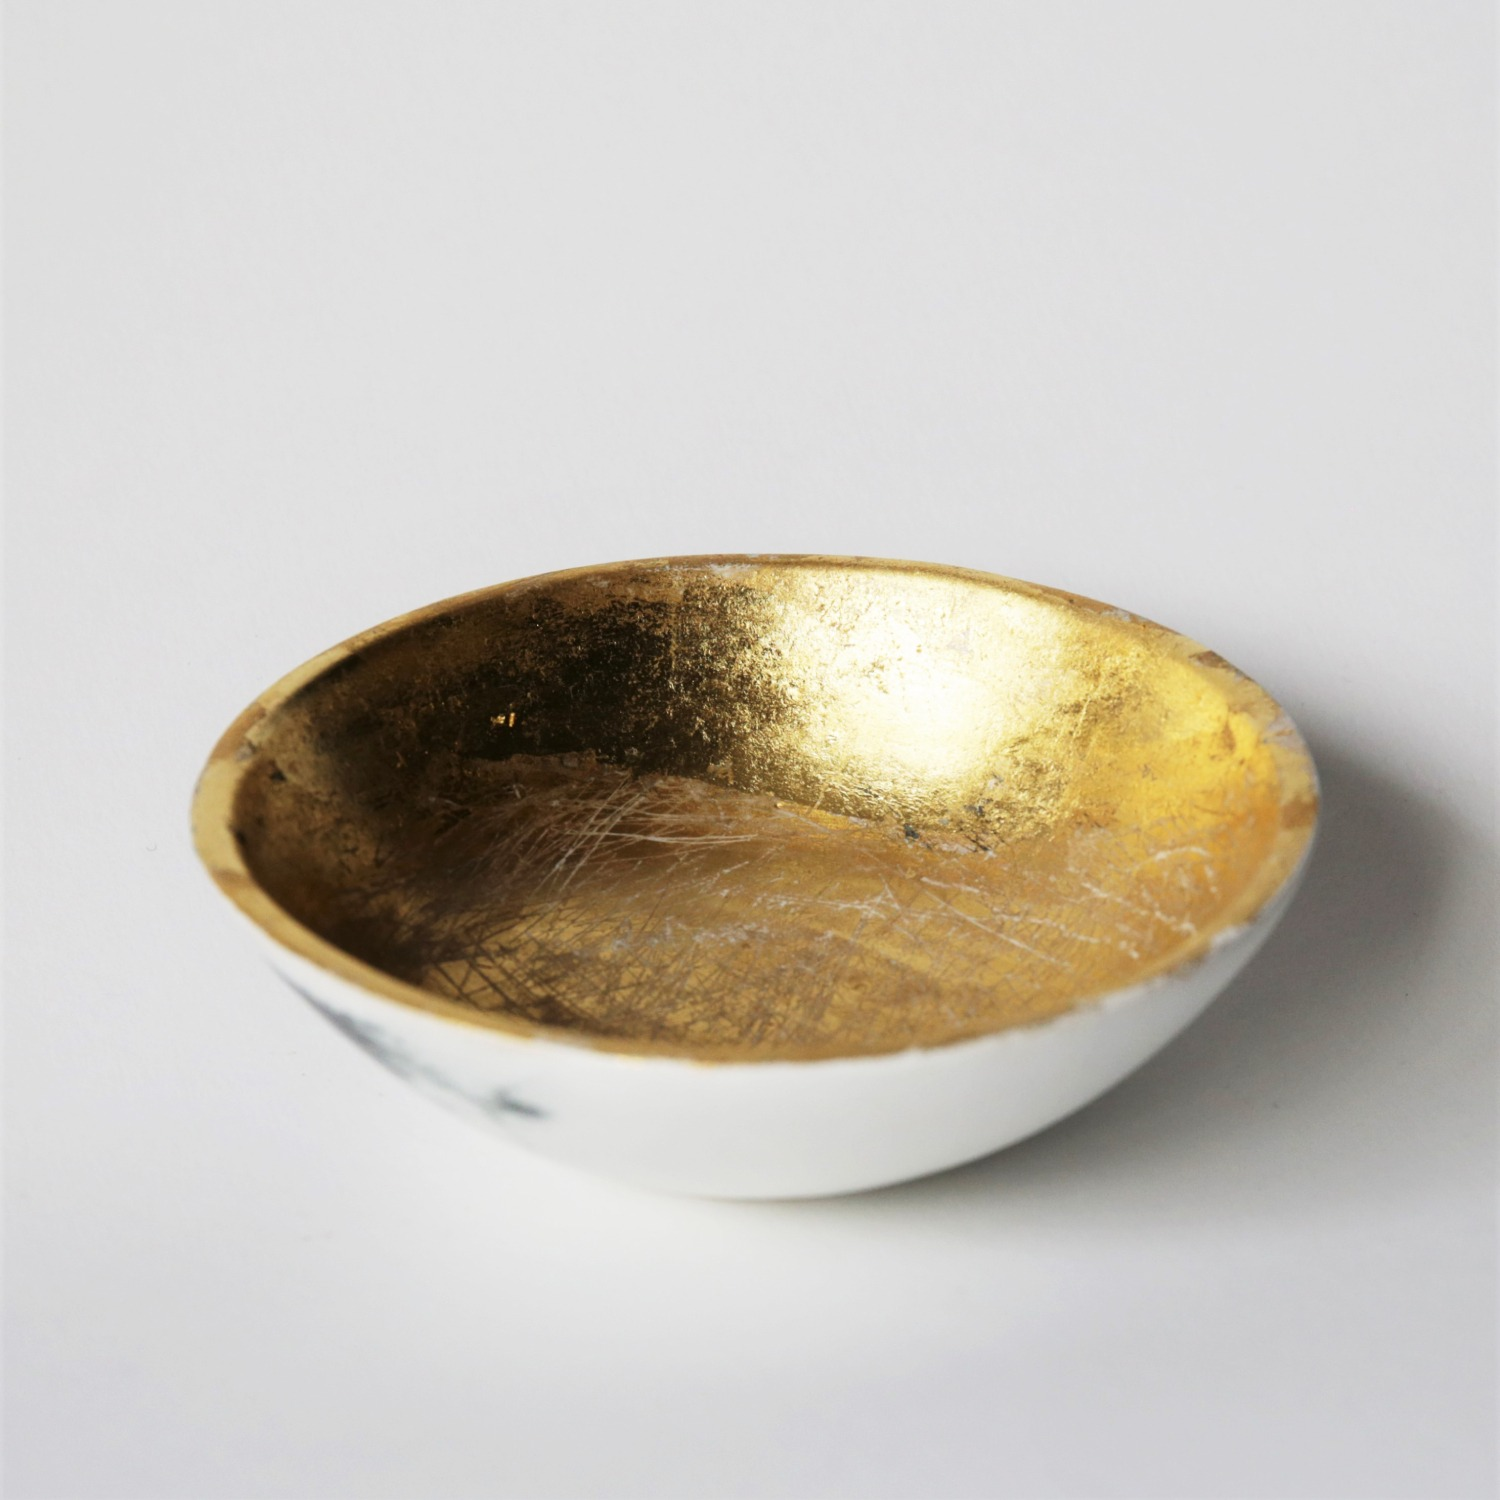 Hand thrown stoneware bowl with 23.5 carat gold leaf by Clay Shed Studio